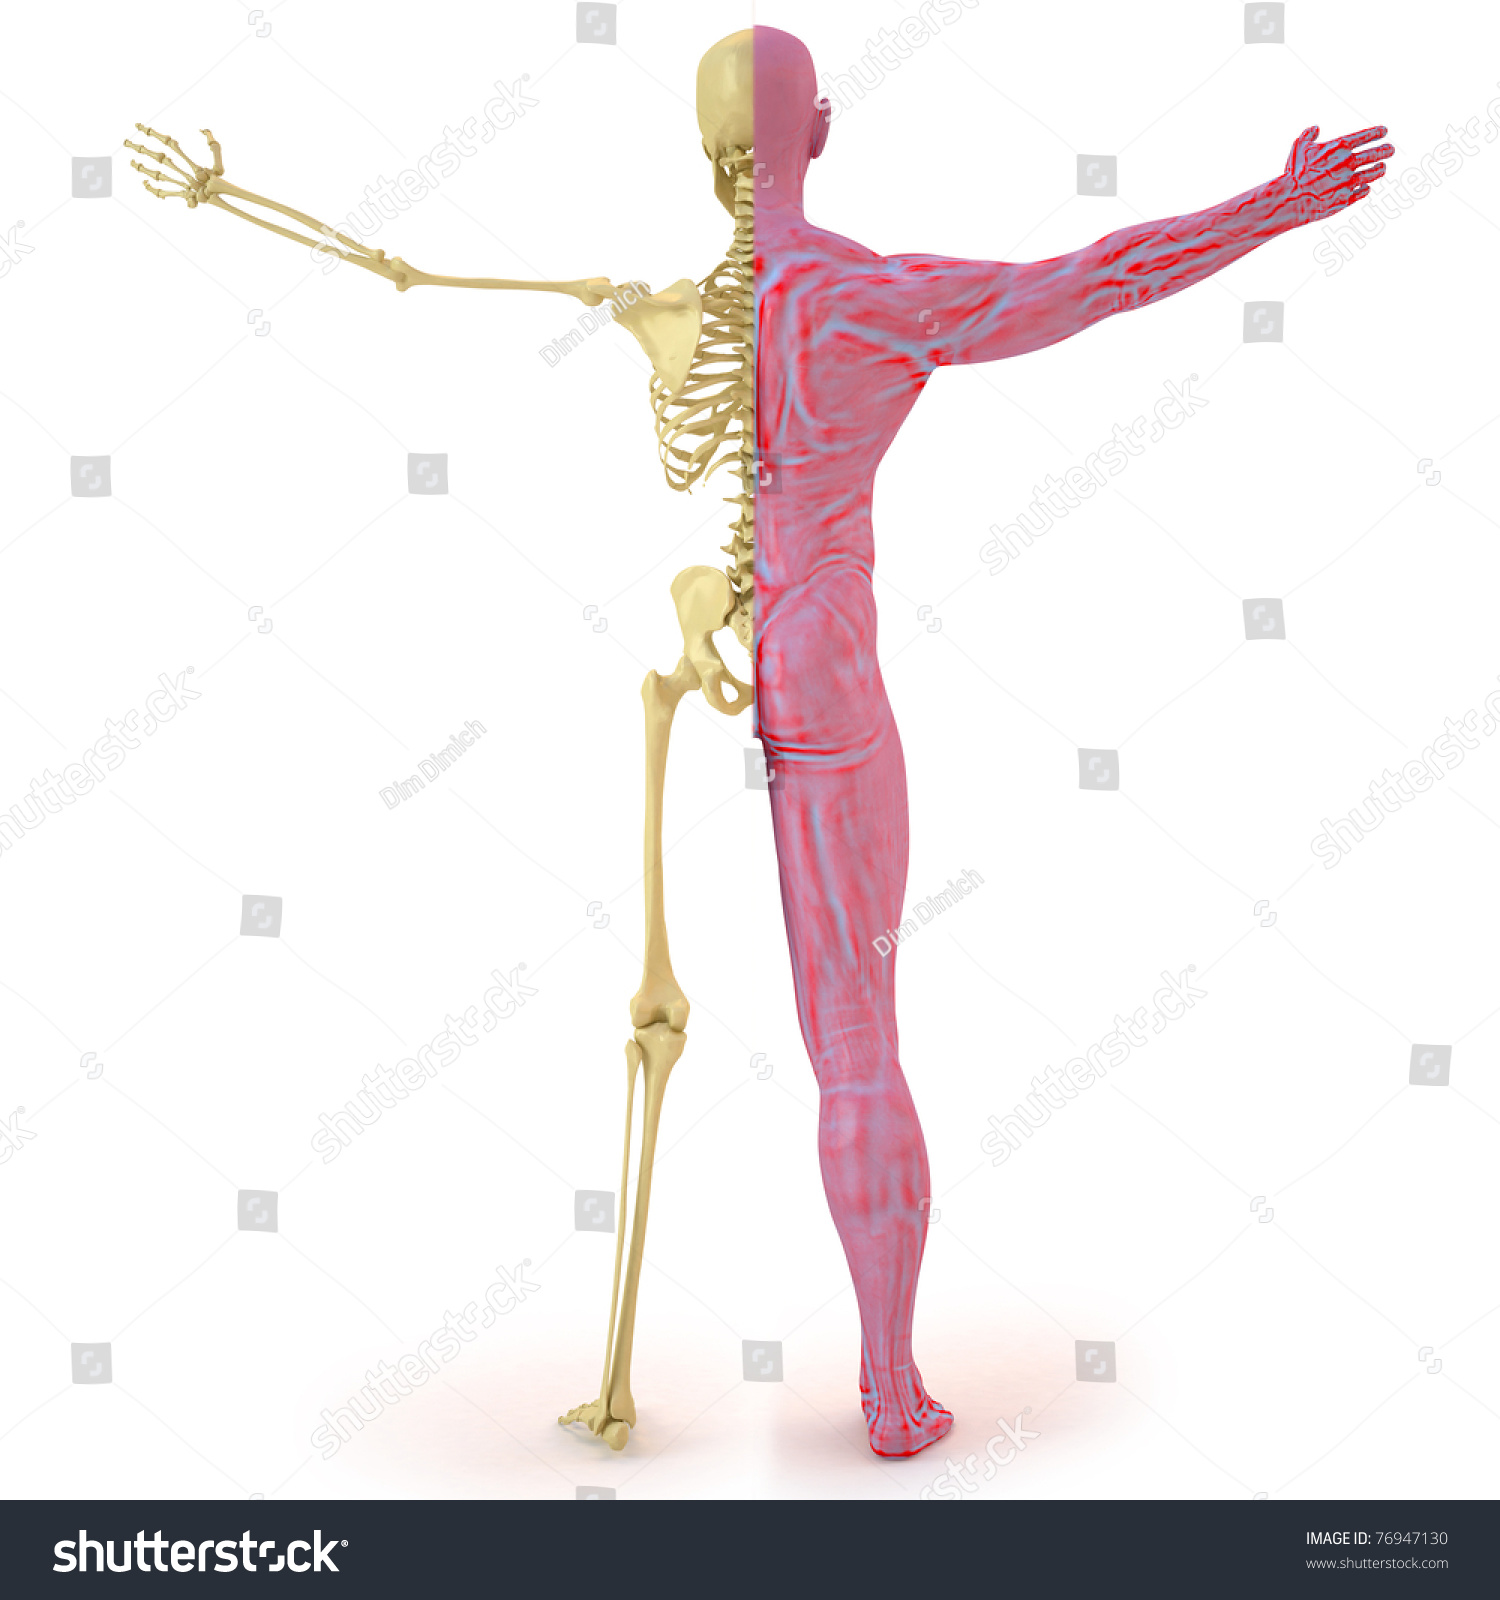 Royalty Free Stock Illustration Of Anatomical Structure Body Man